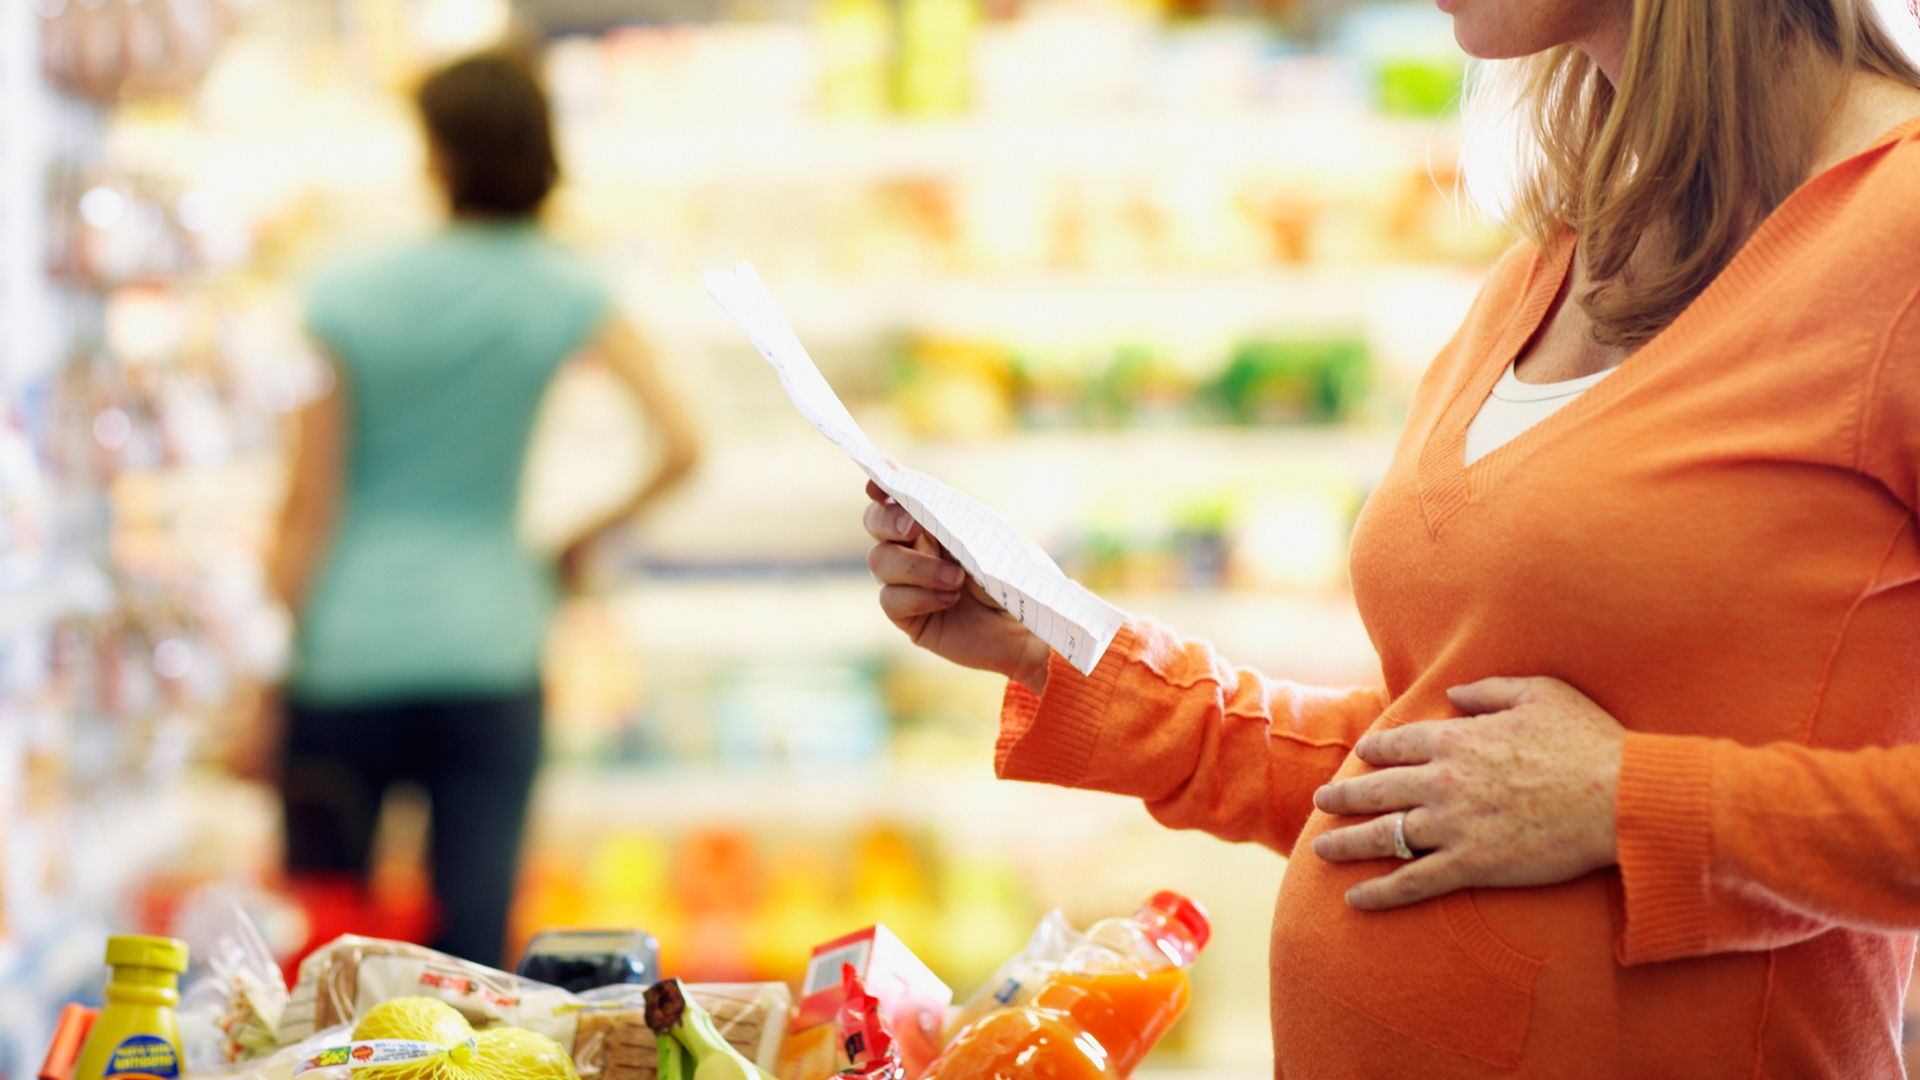 Pregnant and shopping | PregnancyAndBaby.com